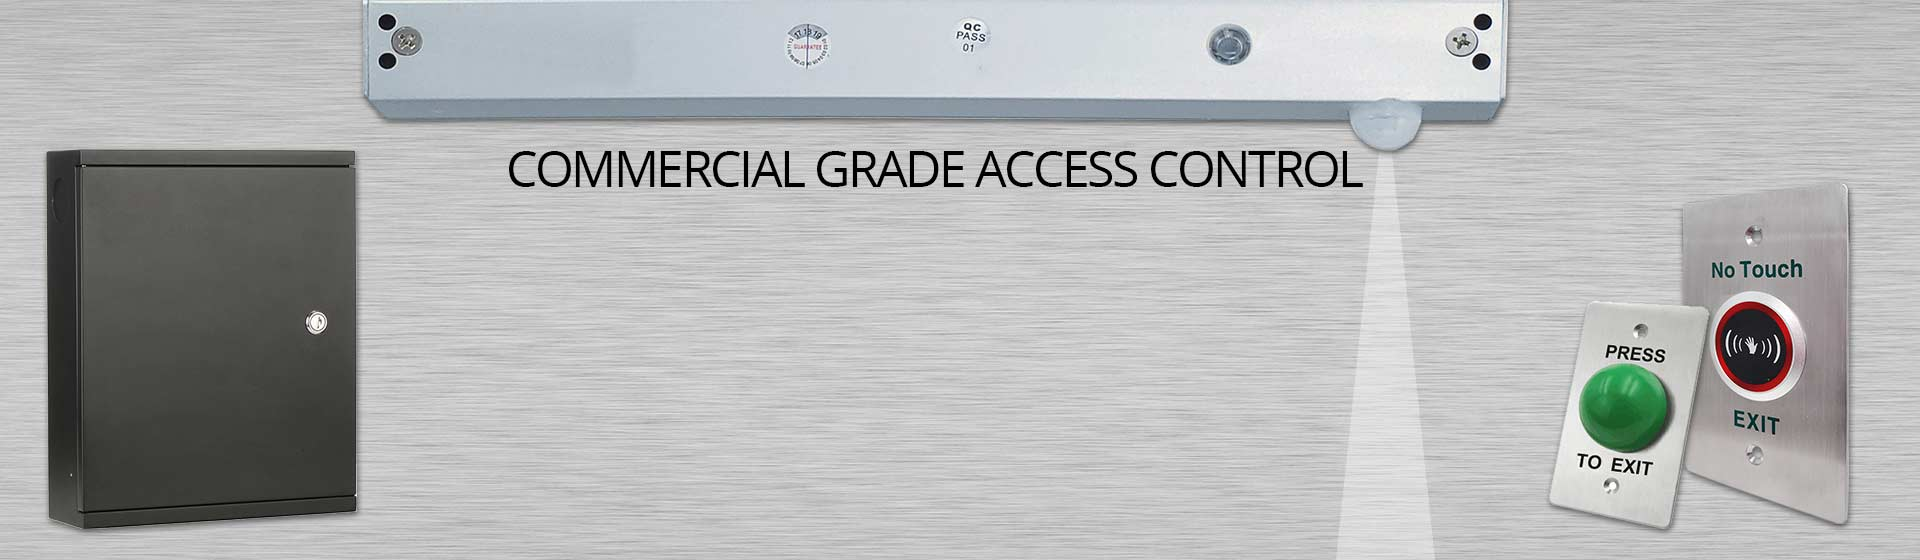 Security and Surveillance Solutions - Access Control